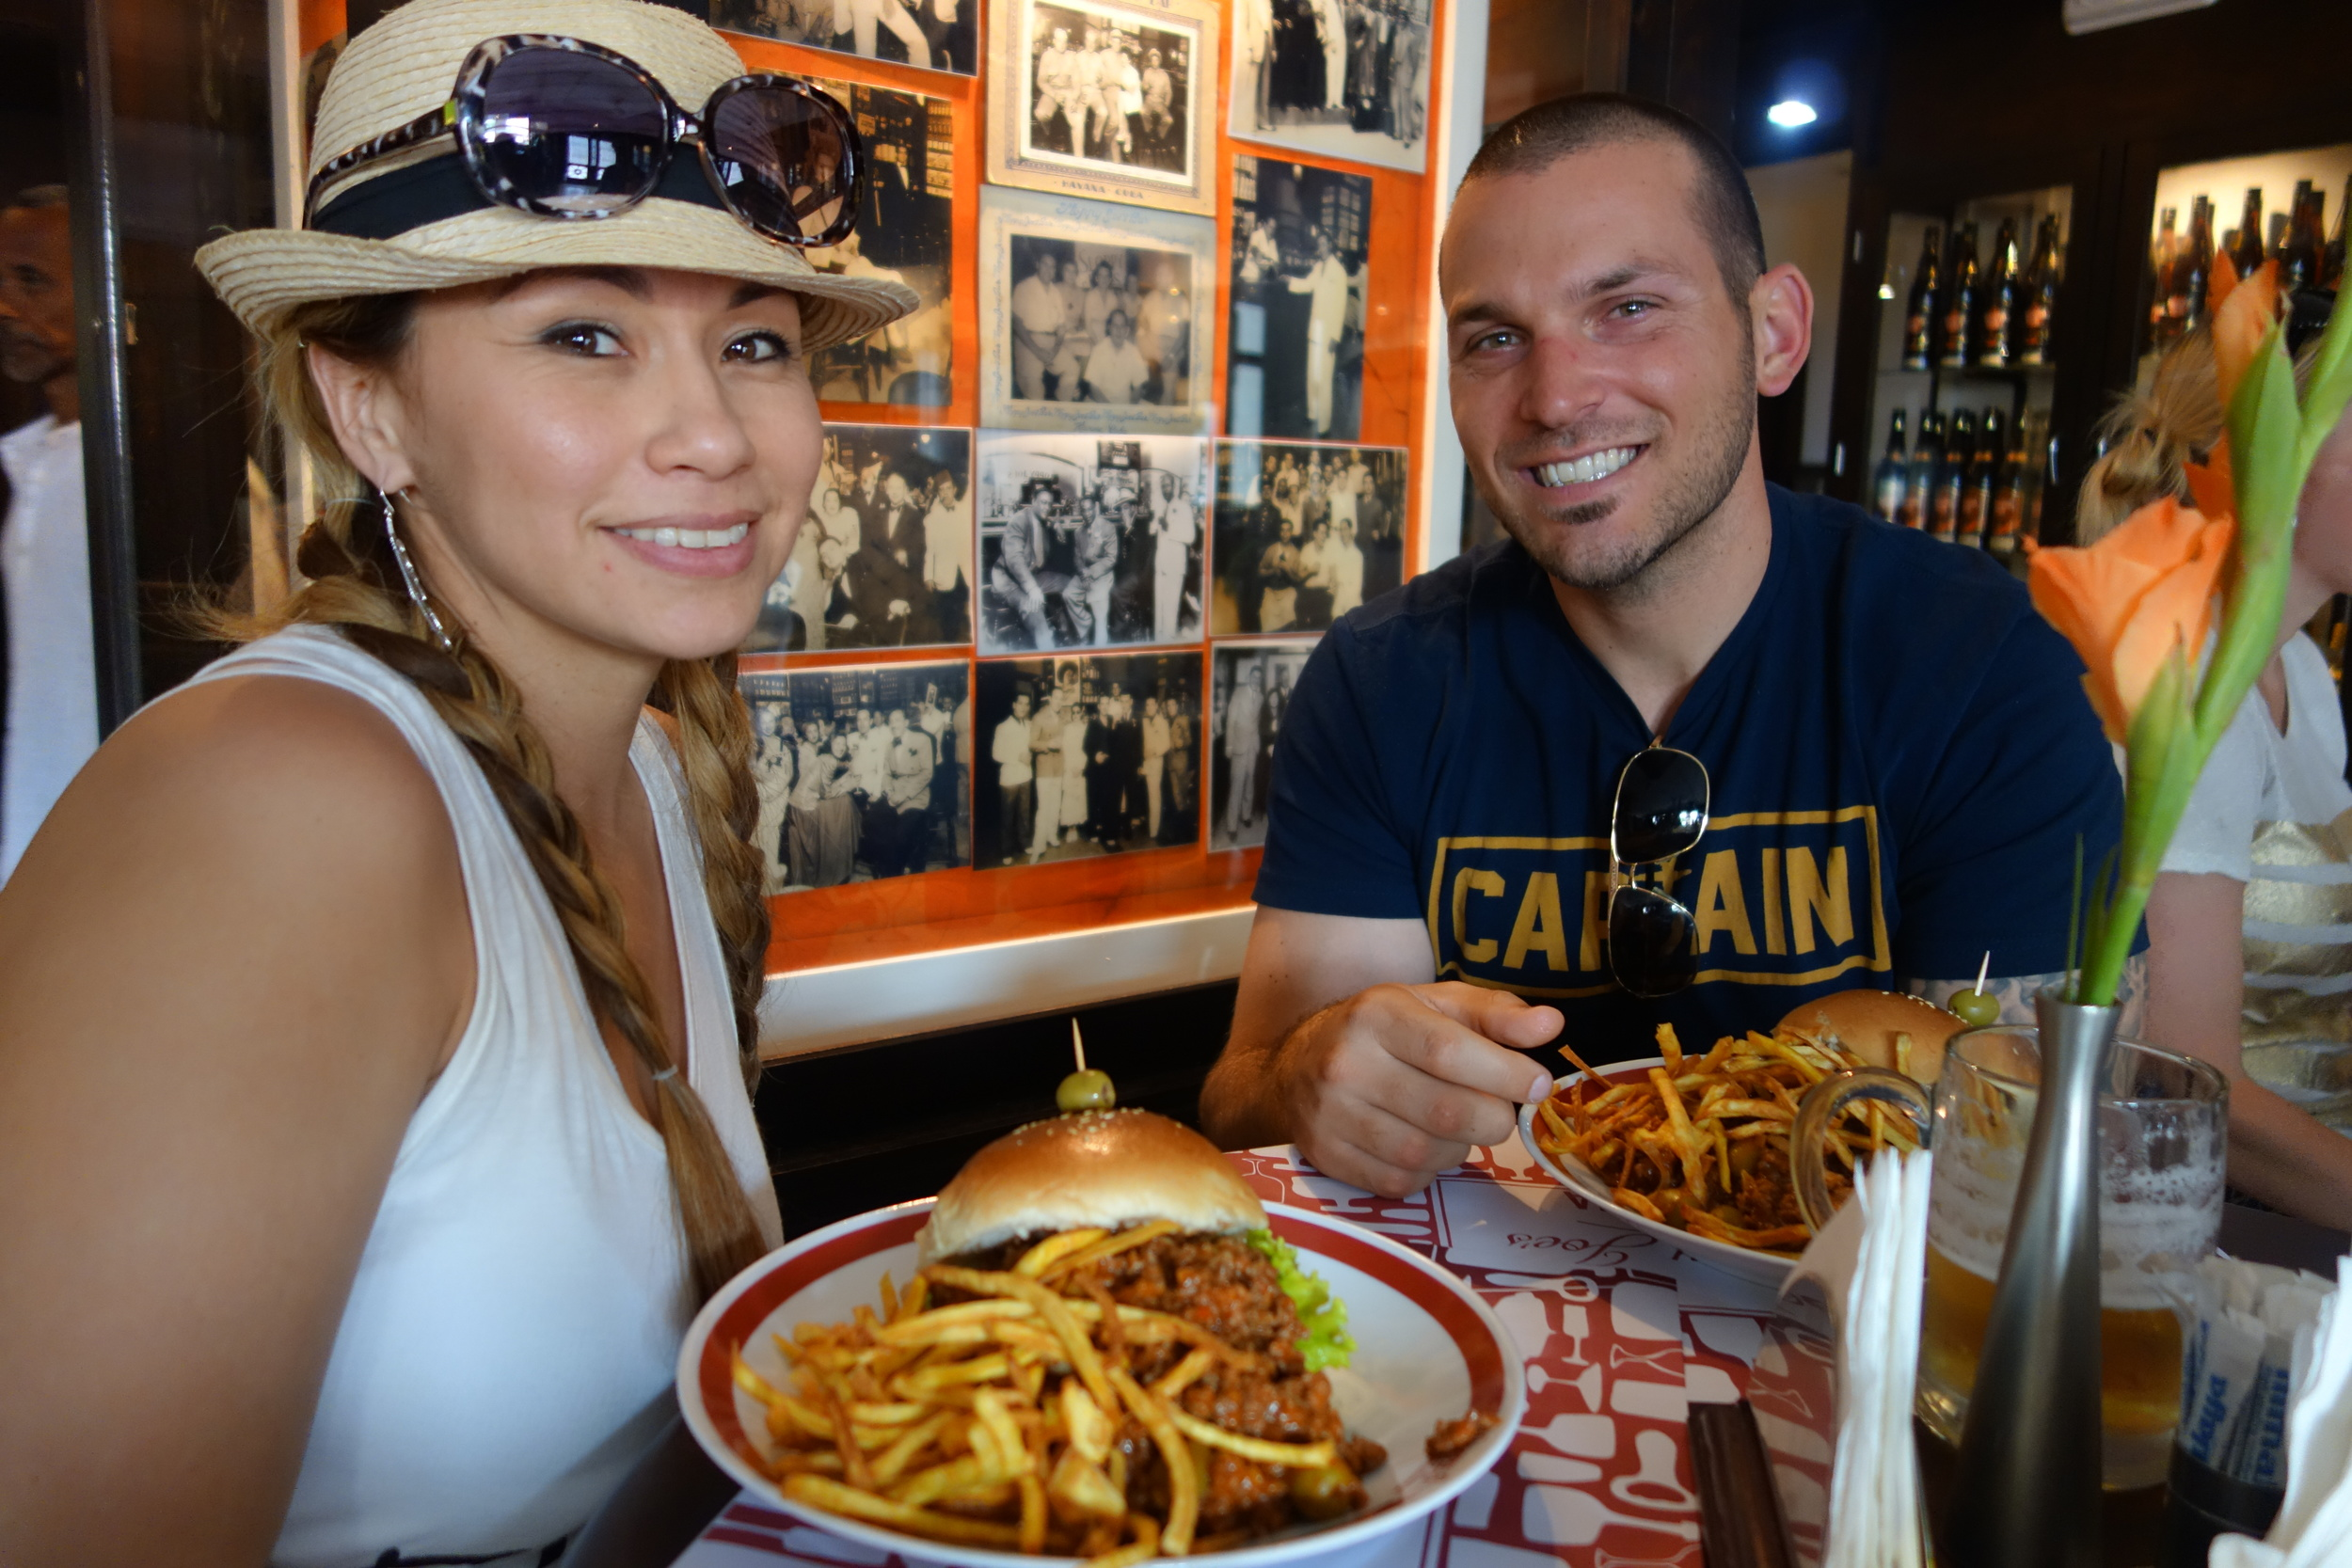 Sloppy Joe's, another popular American haunt of the 1940s and '50s, originated in Cuba and expanded to the US.